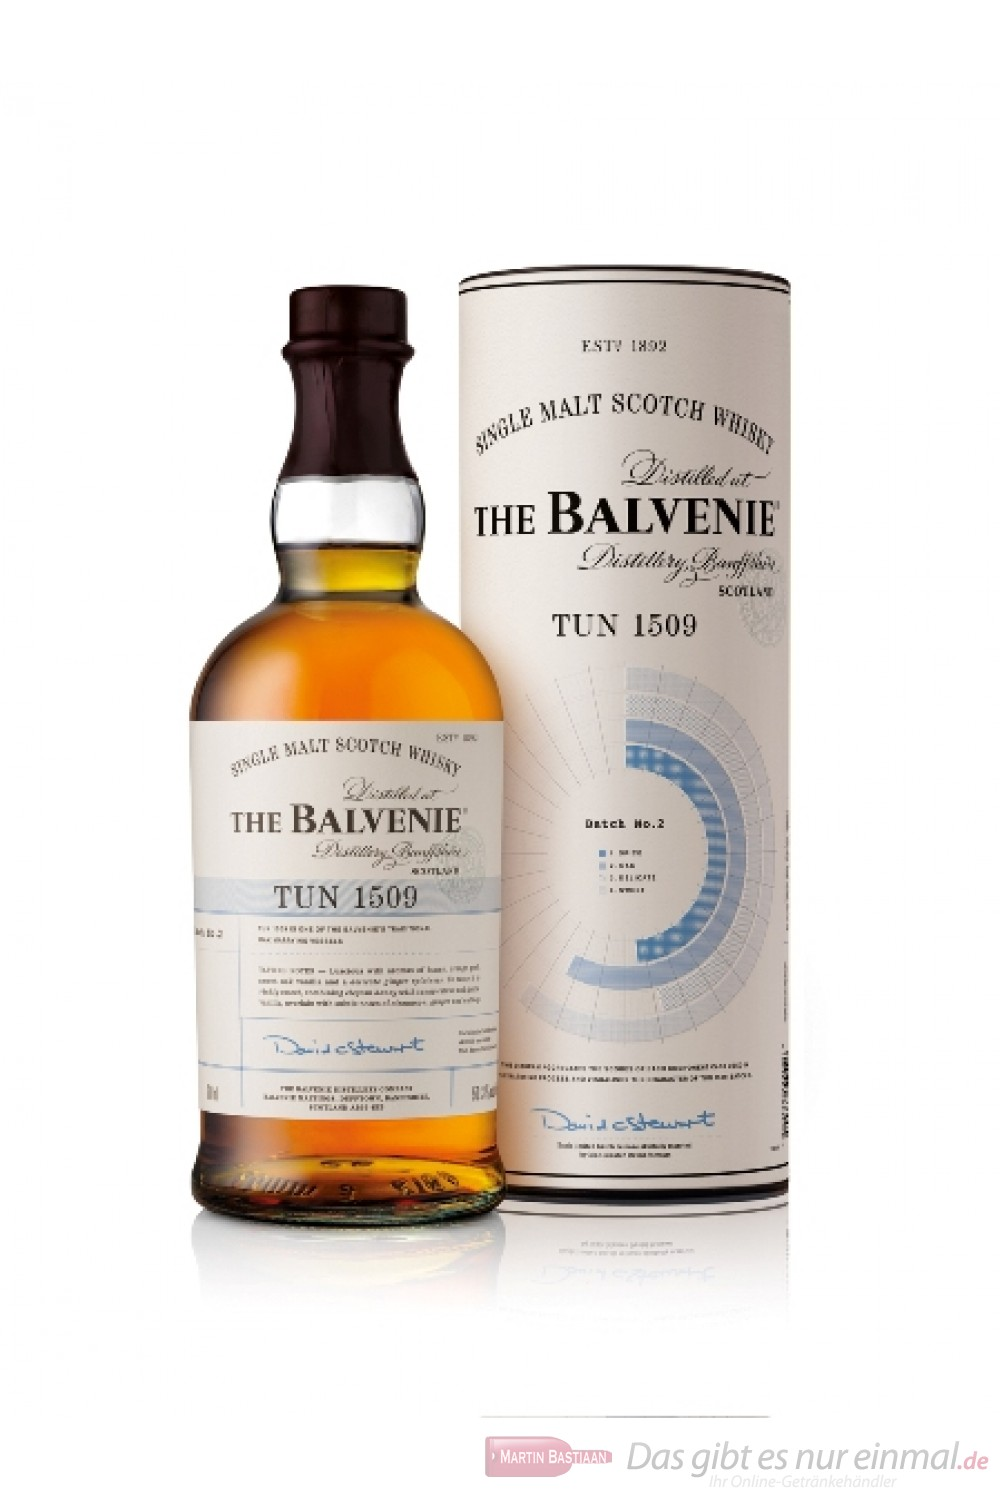 The Balvenie TUN 1509 Batch 2